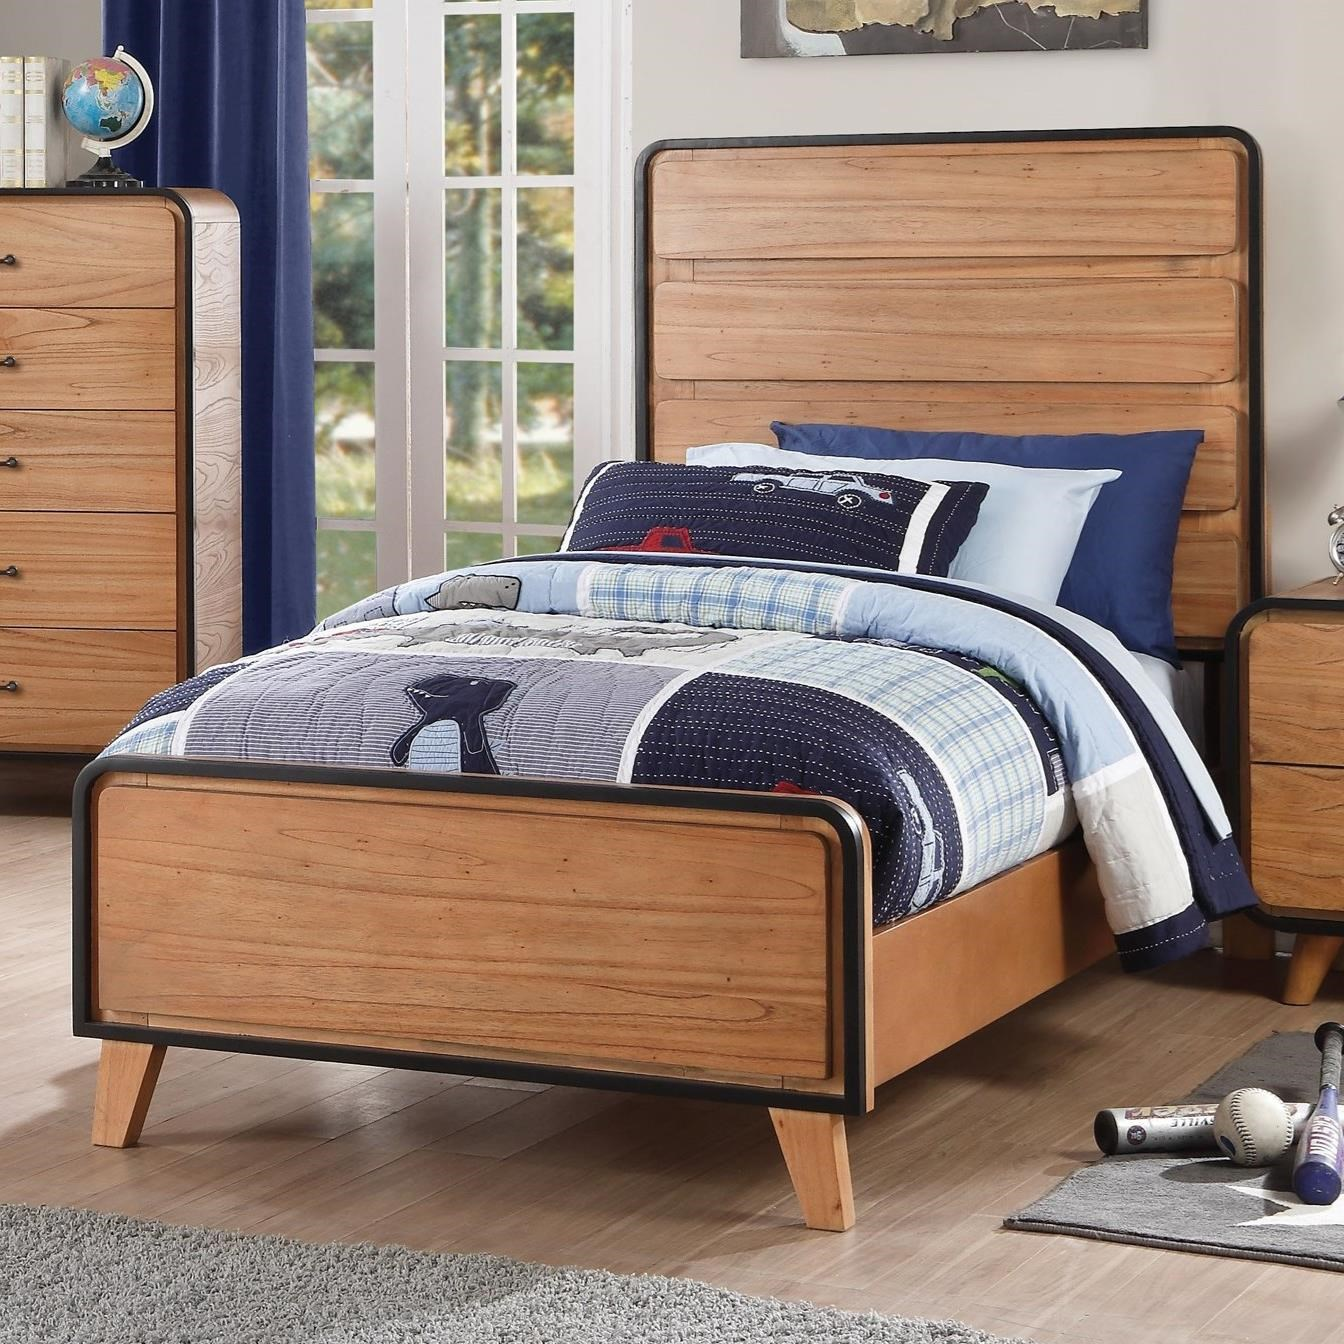 Acme Furniture Carla 30760t Mid Century Modern Twin Bed Del Sol Furniture Platform Beds Low Profile Beds